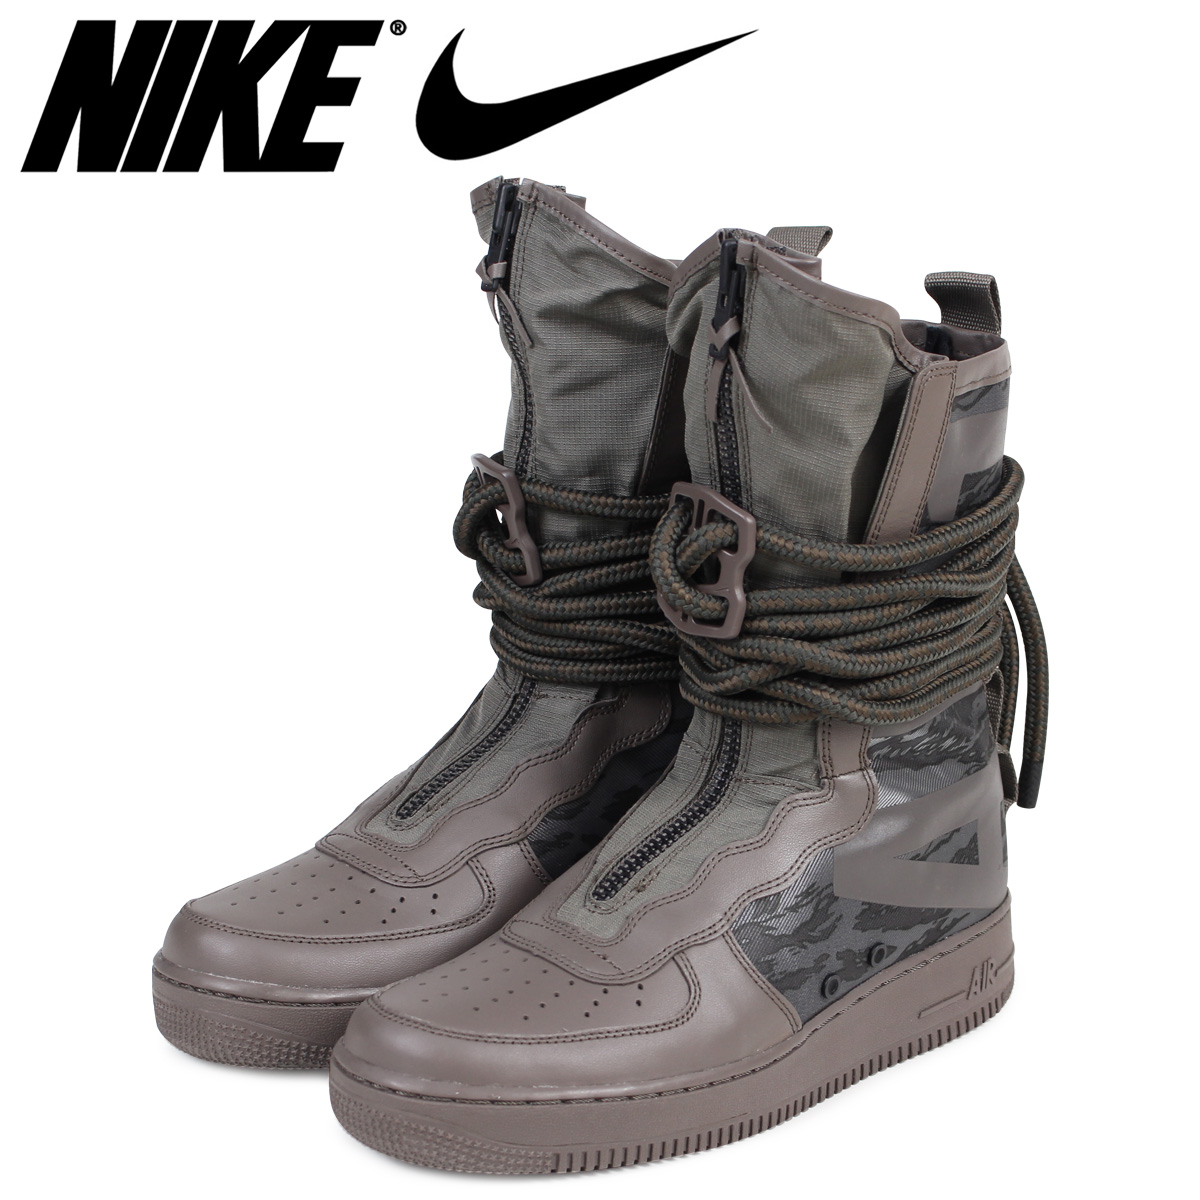 NIKE ナイキ エアフォース1 スニーカー スペシャル フィールド SPECIAL FIELD AIR FORCE 1 AA1128-203 SF AF1 メンズ ブラウン 【決算セール 返品不可】